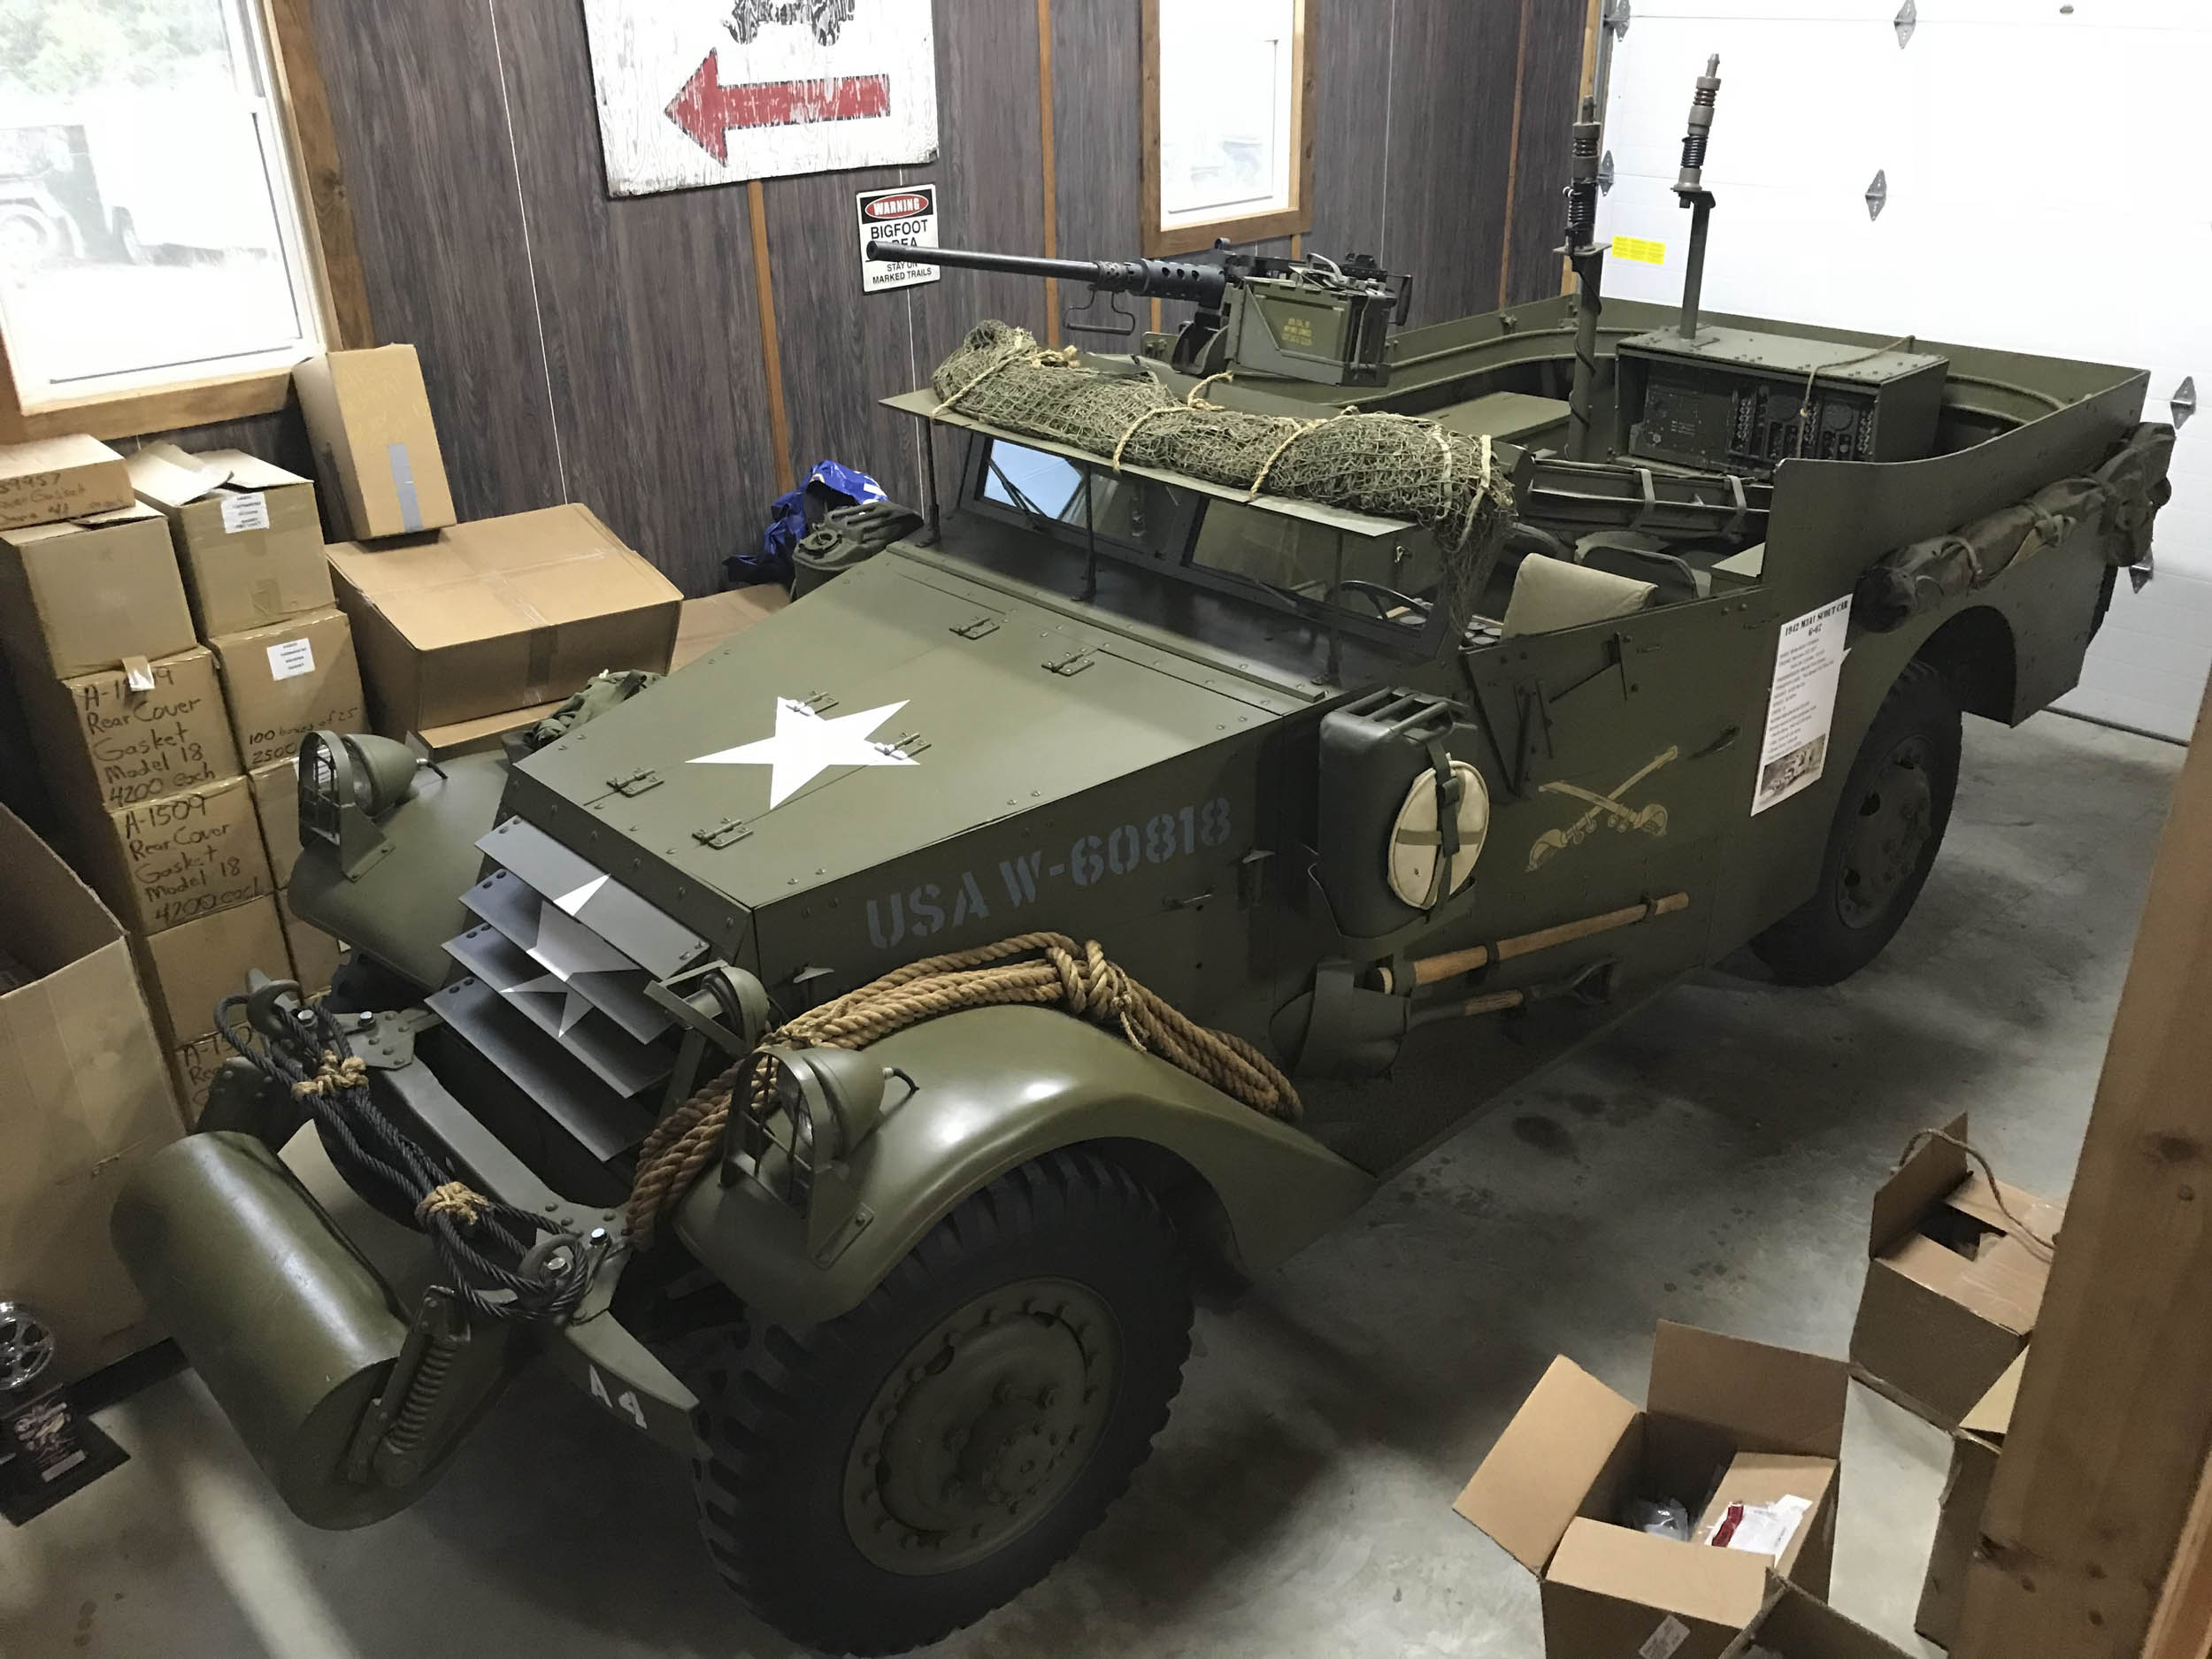 This military jeep restoration shop has all sorts of parts stocked up thumbnail